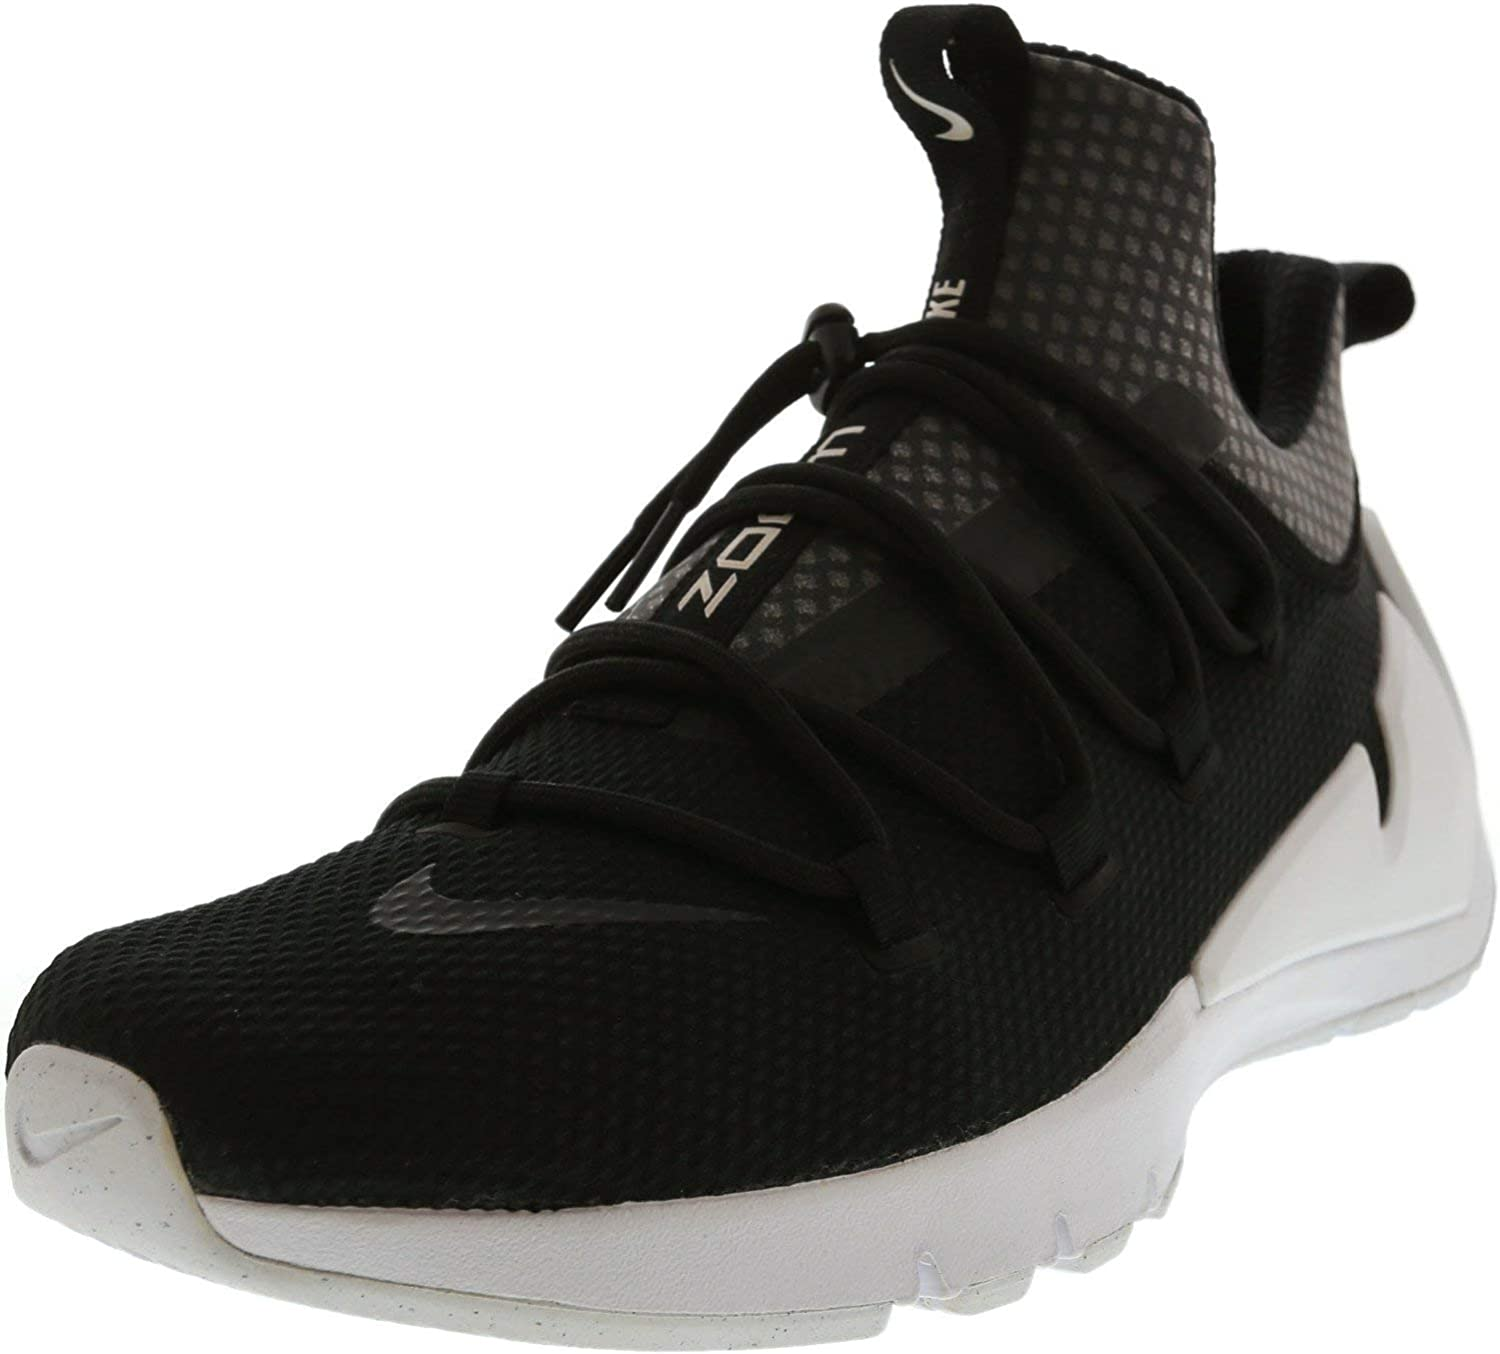 Nike Men's Air Zoom Grade, Black Black-White